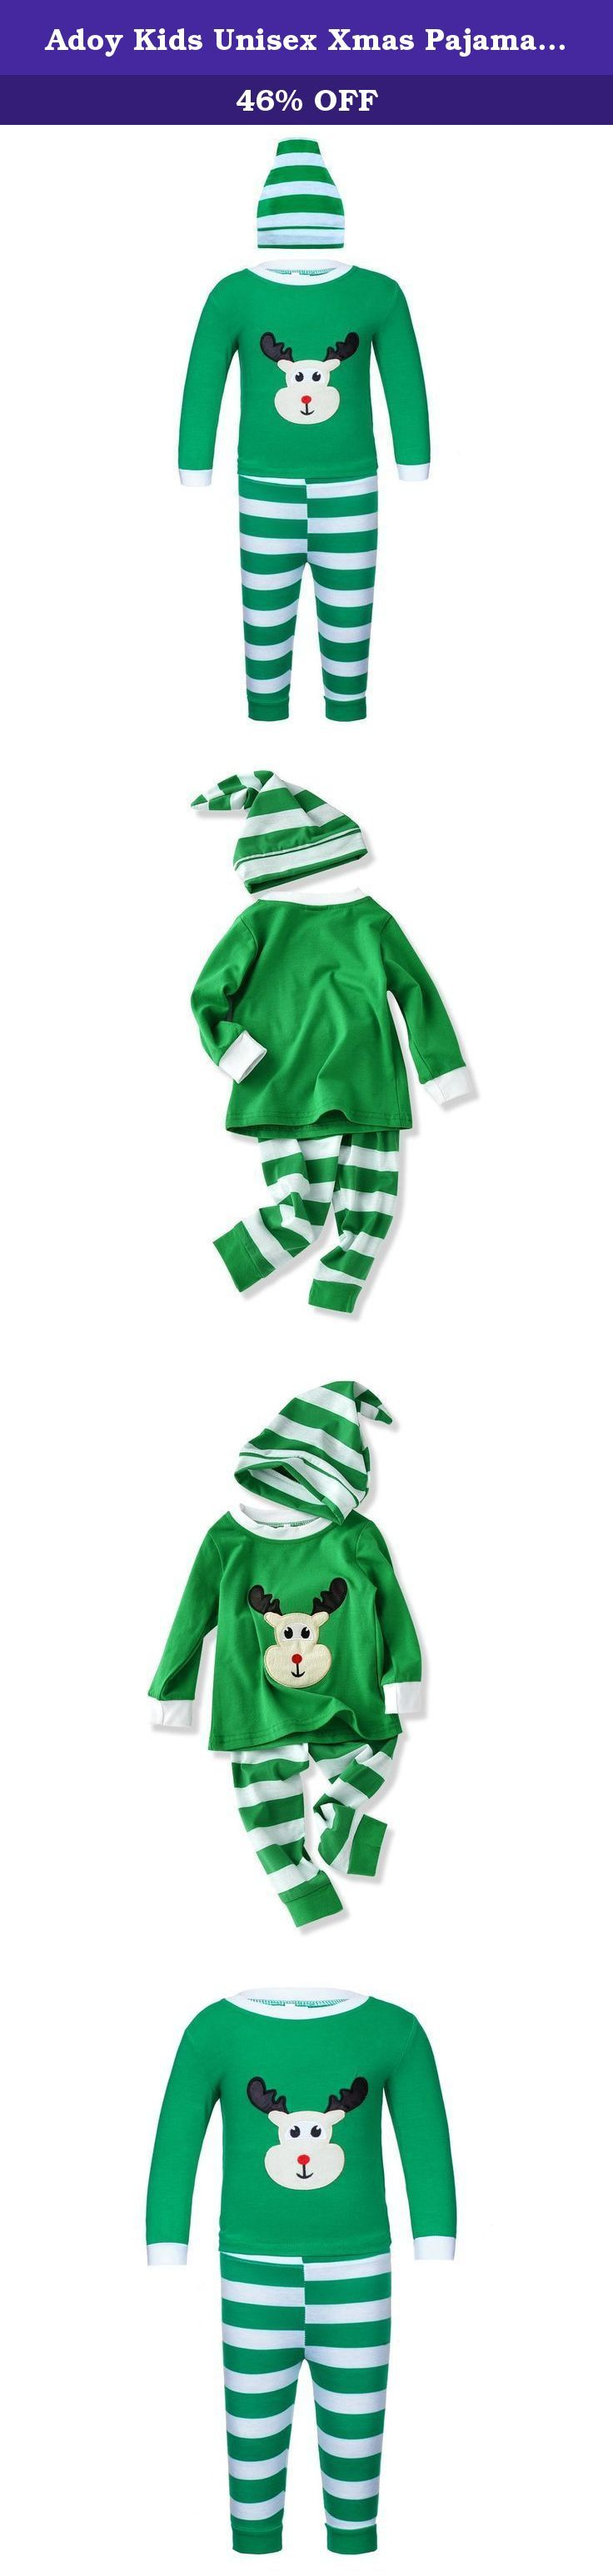 "Adoy Kids Unisex Xmas Pajamas Sets Tshirt+Pant+Hat Sleep Suit (120(5T), Green). Color:Red,Green Size:80=12-18 months;90=2T;100=3T;110=4T;120=5T 1 Set=1*Hat+1*Pants+1*T-shirt 80 (1-2Y): Shirt length 35cm/13.7"", Chest 52cm/20.4"", Pants Length 45cm/17.7"" 90 (2-3Y): Shirt length 37cm/14.5"", Chest 54cm/21.2"", Pants Length 48cm/18.9"" 100 (3-4Y): Shirt length 39cm/15.3"", Chest 56cm/22.0"",Pants Length 51cm/20.0"" 110 (4-5Y): Shirt length 41cm/16.1"", Chest 58cm/22.8, Pants Length 54cm/21.2"" 120..."